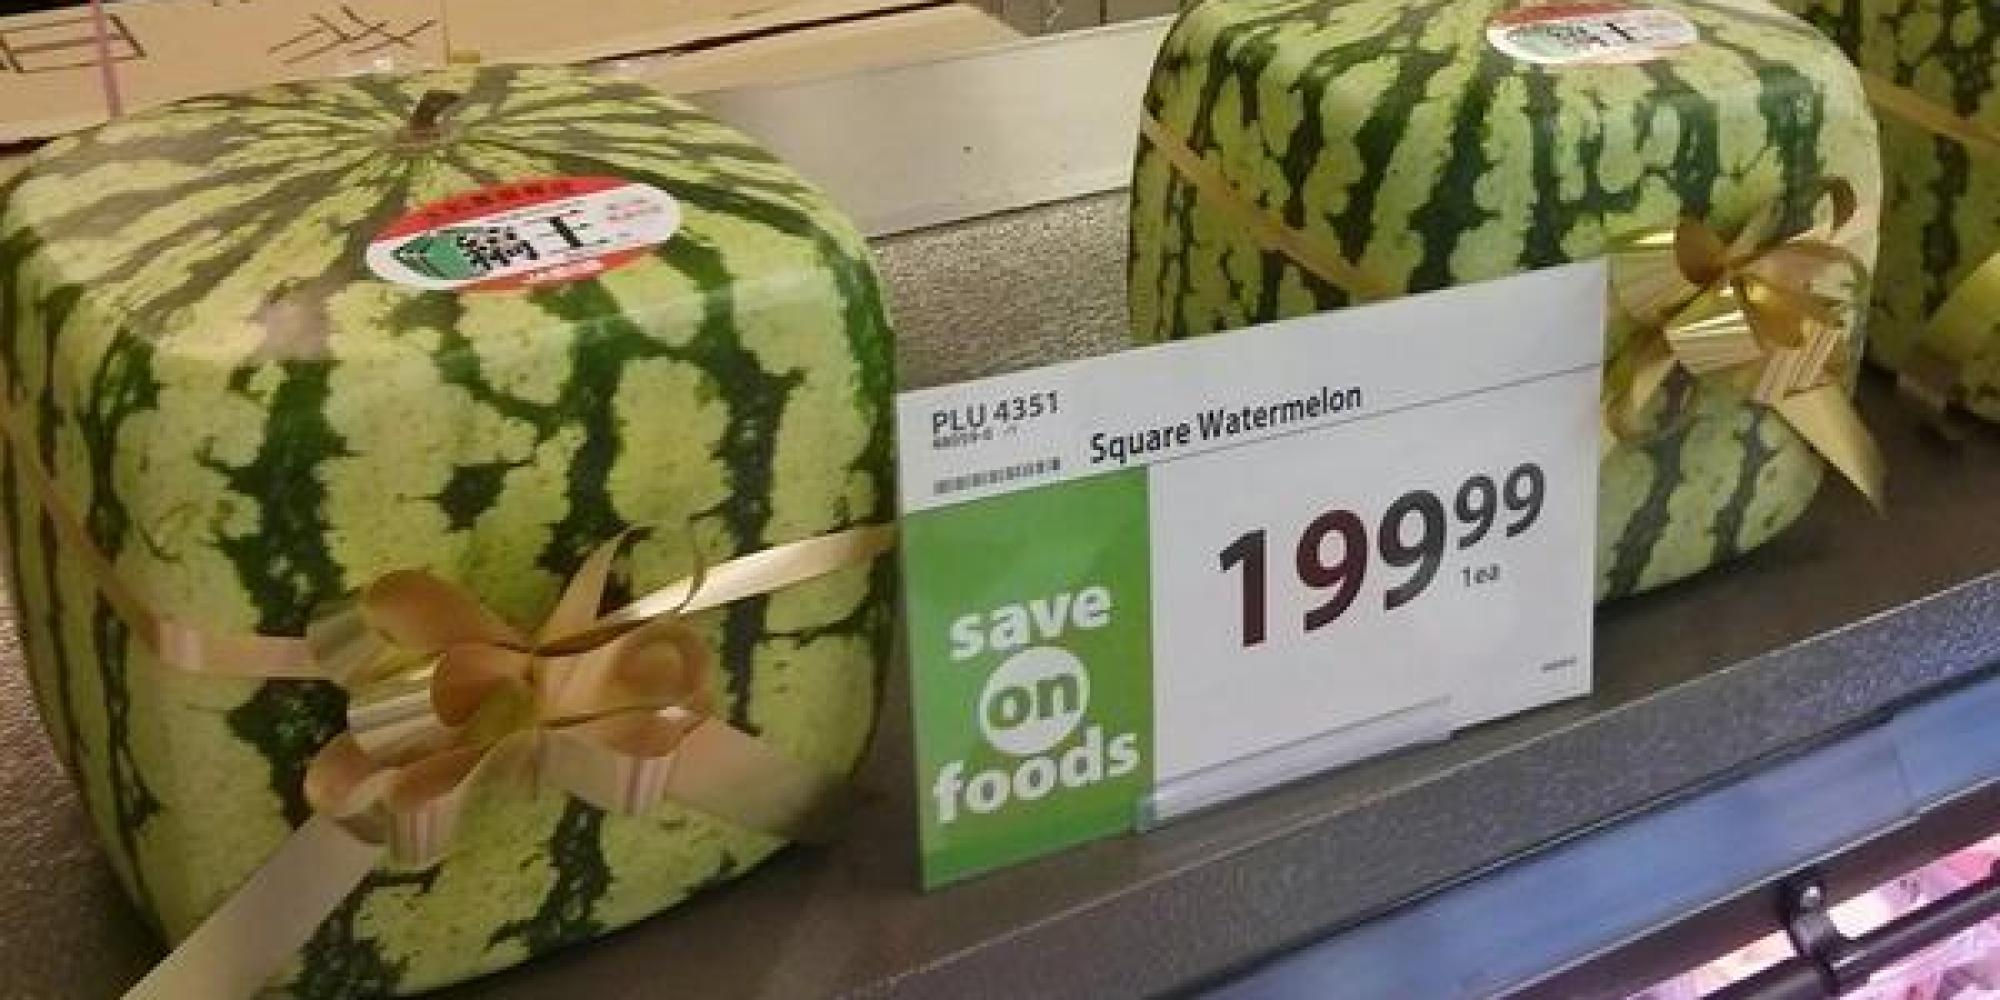 Square watermelons now available in alberta - Square watermelons how and why ...